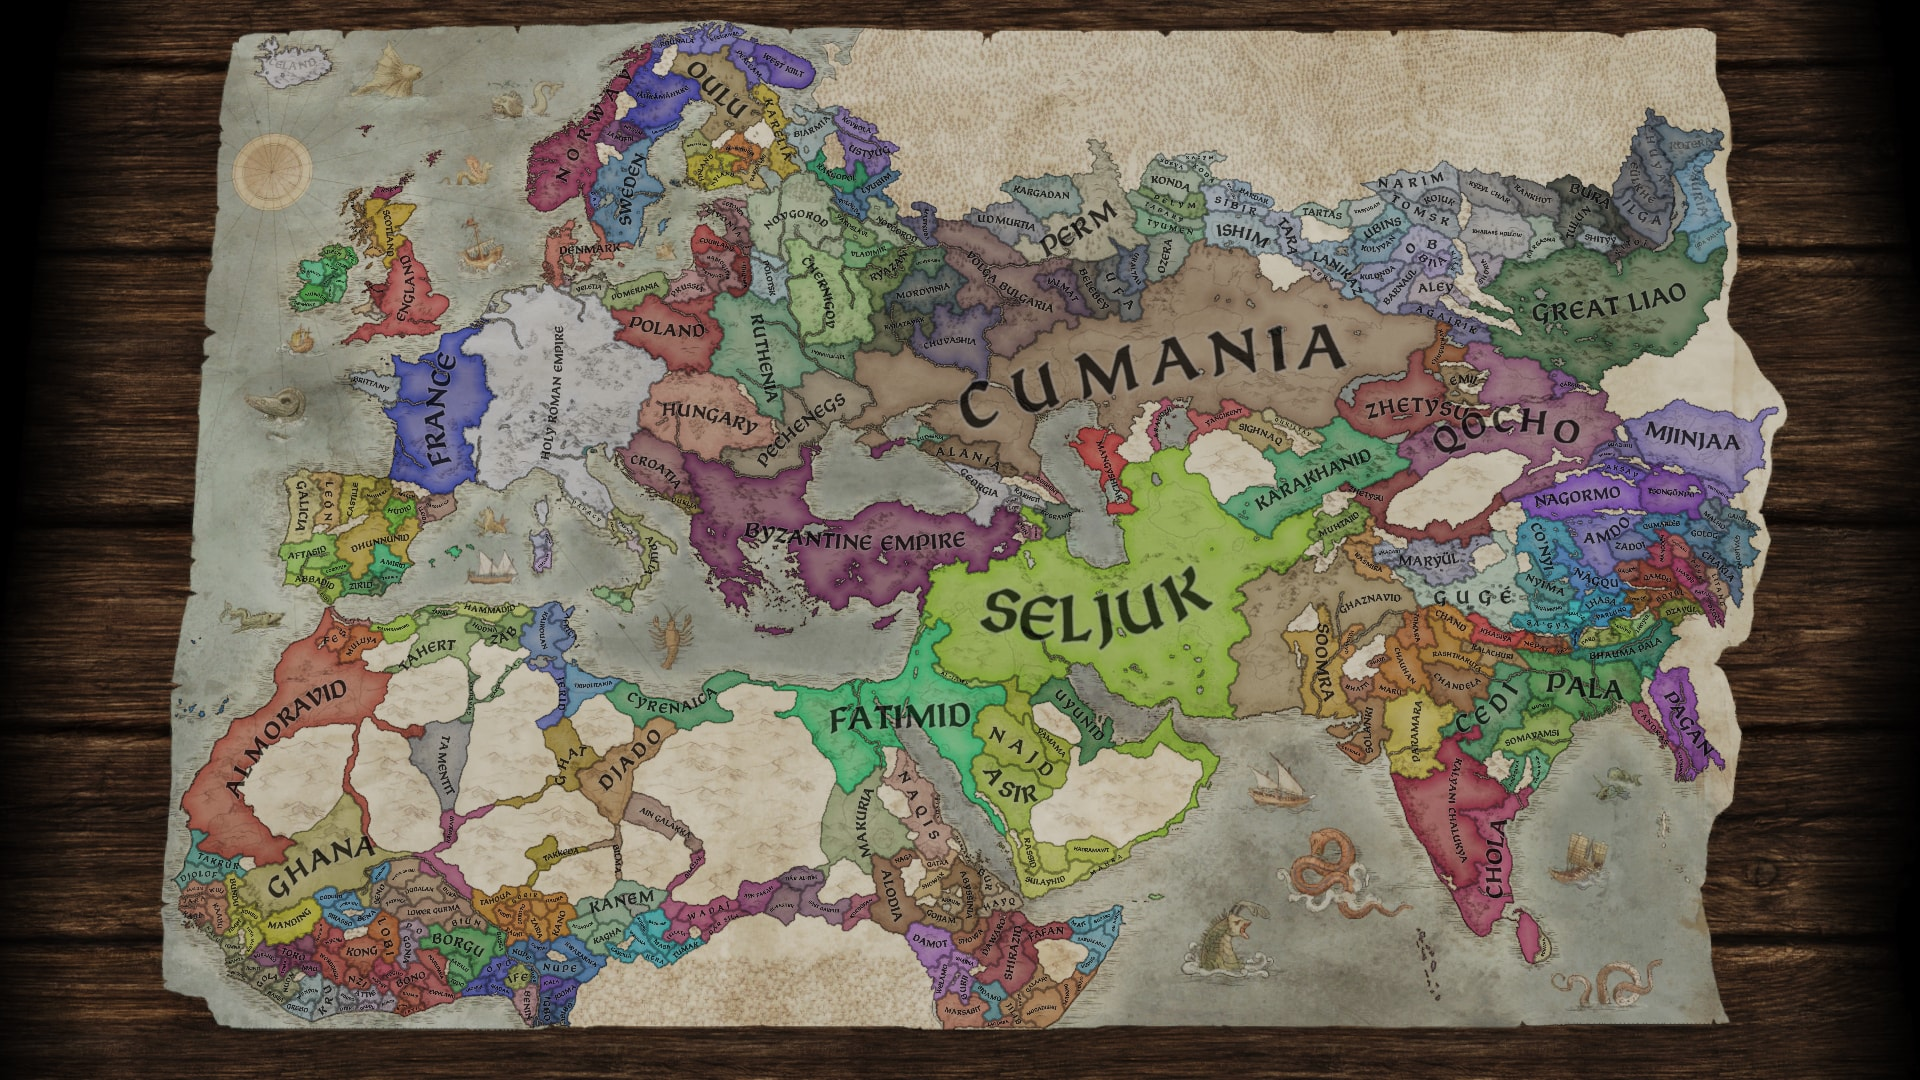 Crusader Kings III Patch 1.1 patch notes